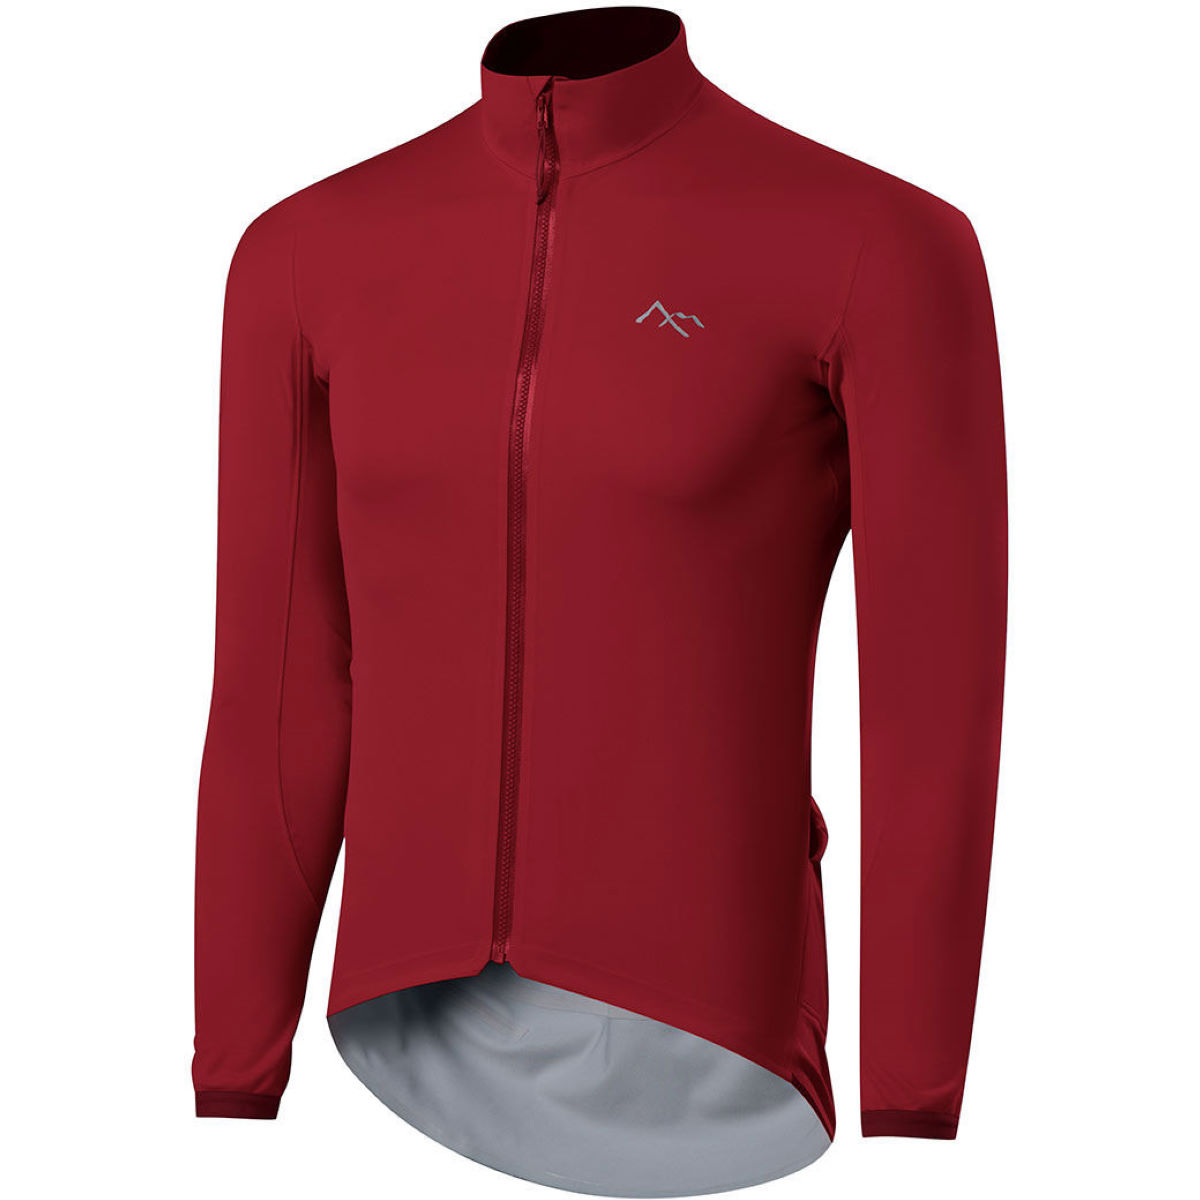 Maillot 7Mesh Corsa Windstopper Softshell - 2XL Carmine Red